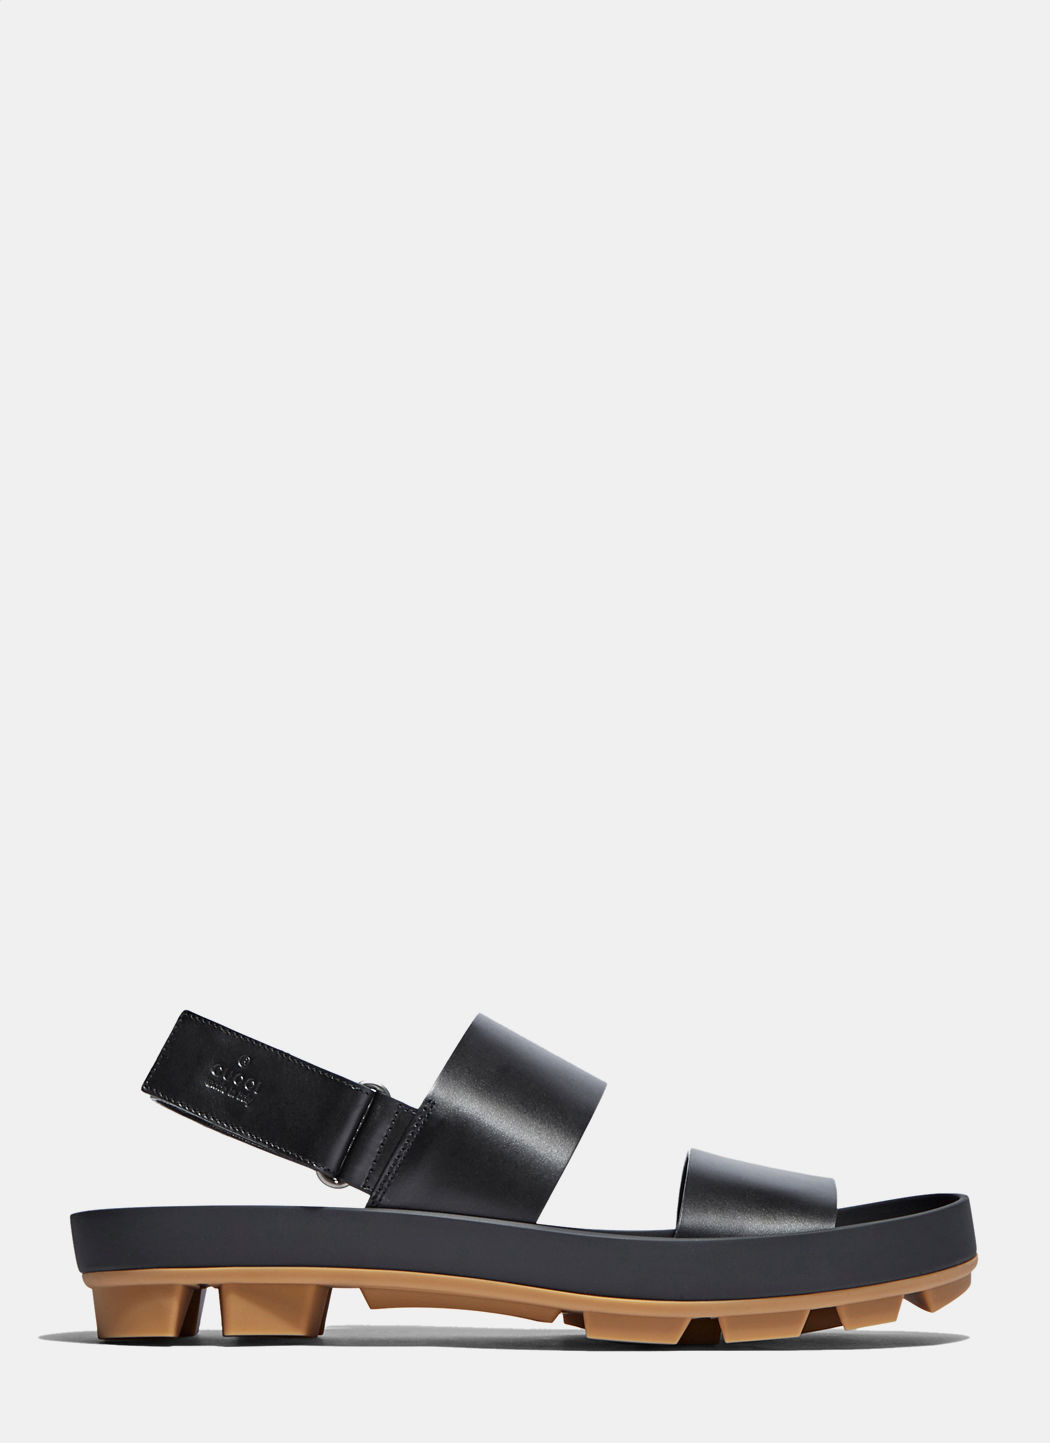 Gucci Men's Leather Two Strap Sandals In Black